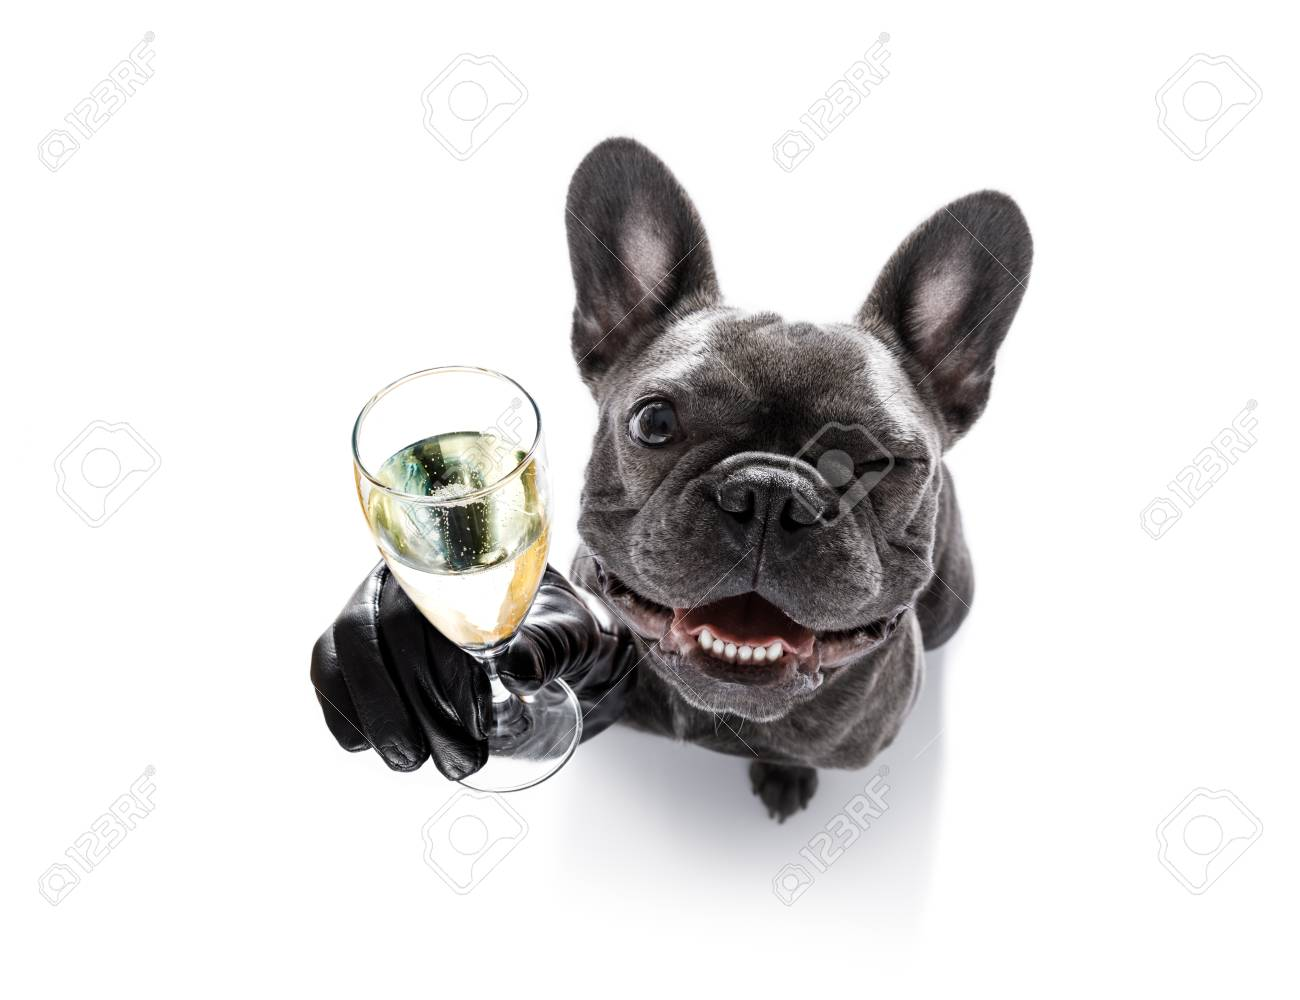 french bulldog dog celebrating new years eve with owner and champagne glass isolated on white background , wide angle view - 88148666